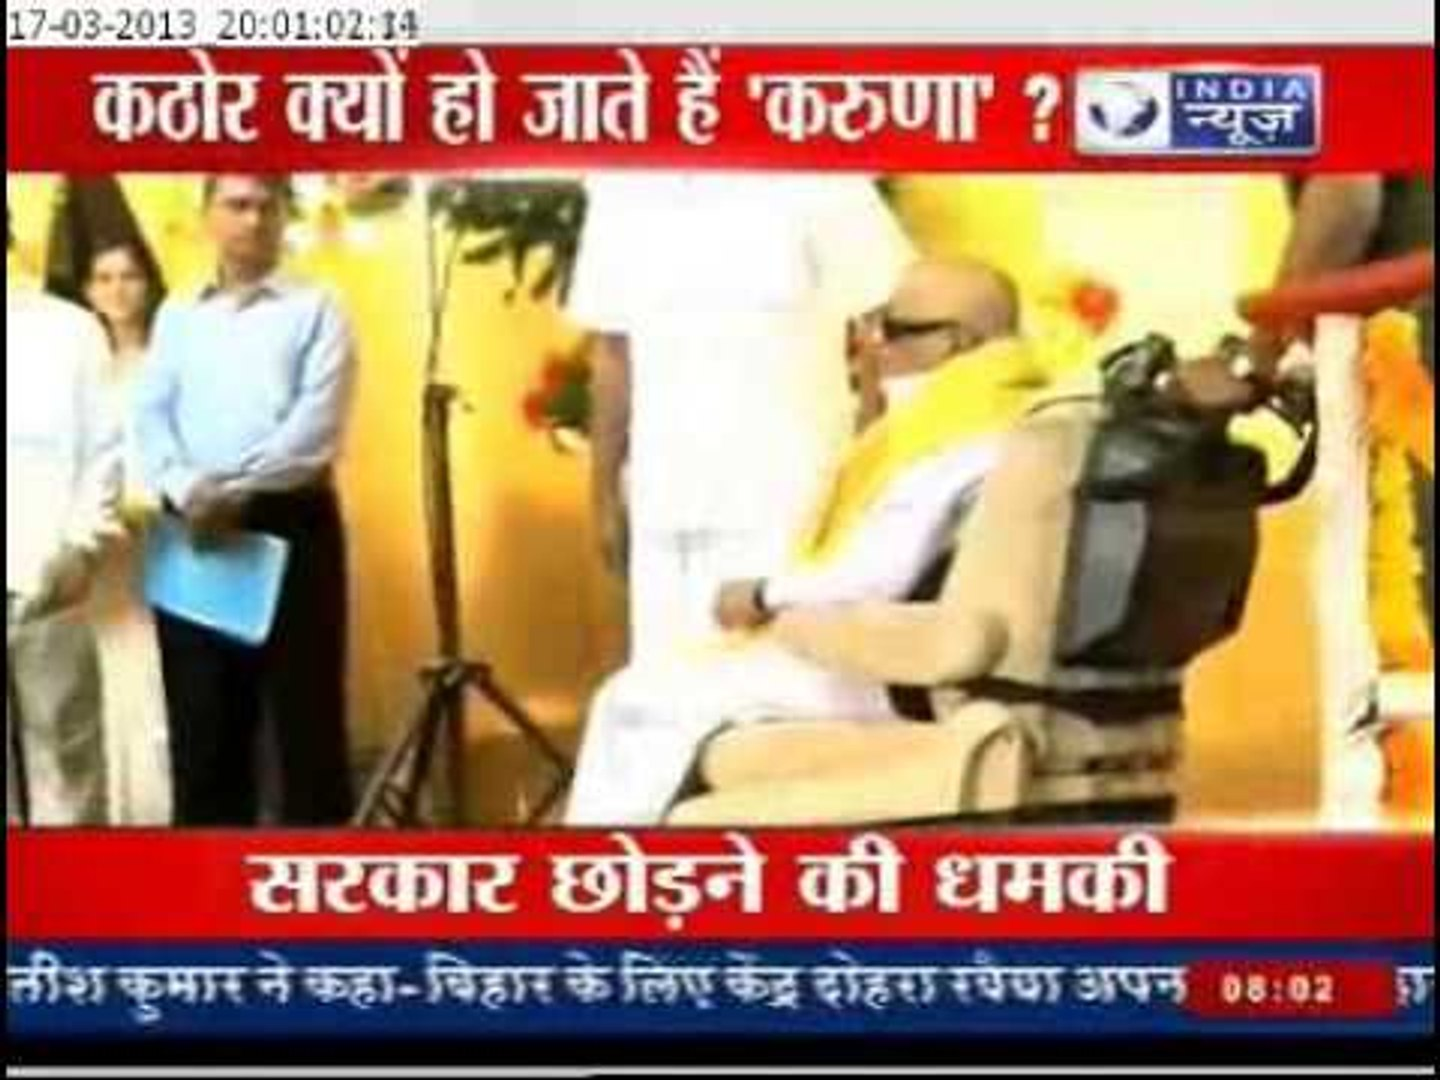 India News: Top News of this hour